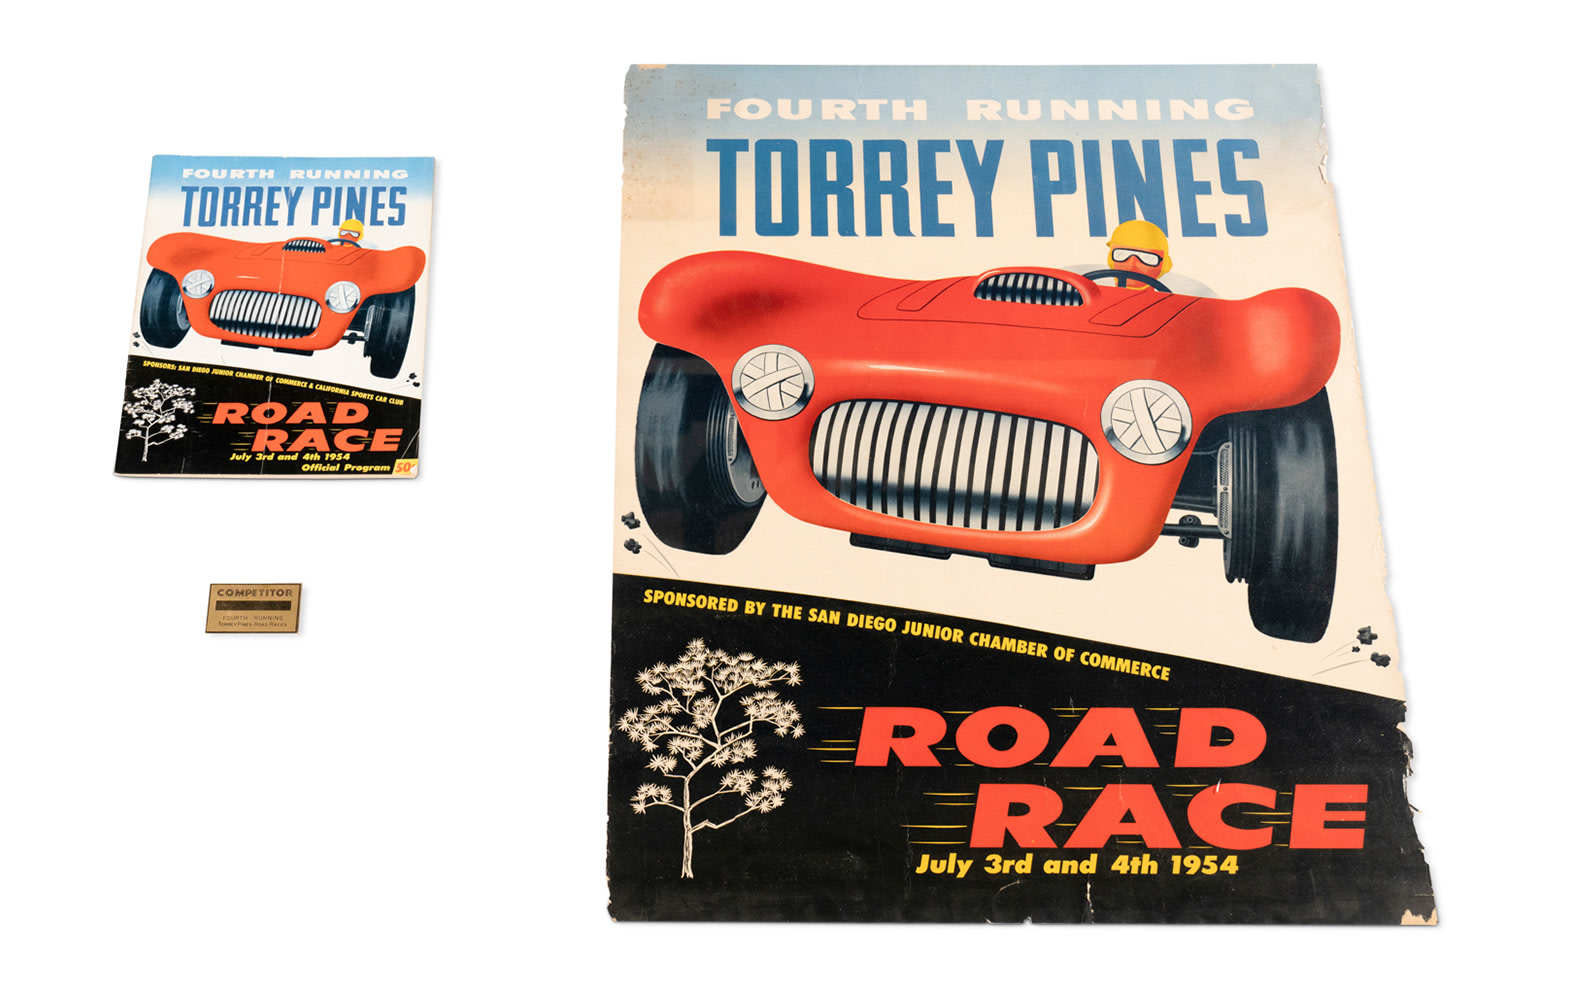 1954 Torrey Pines Road Race Official Poster, Program, and Competitor Badge